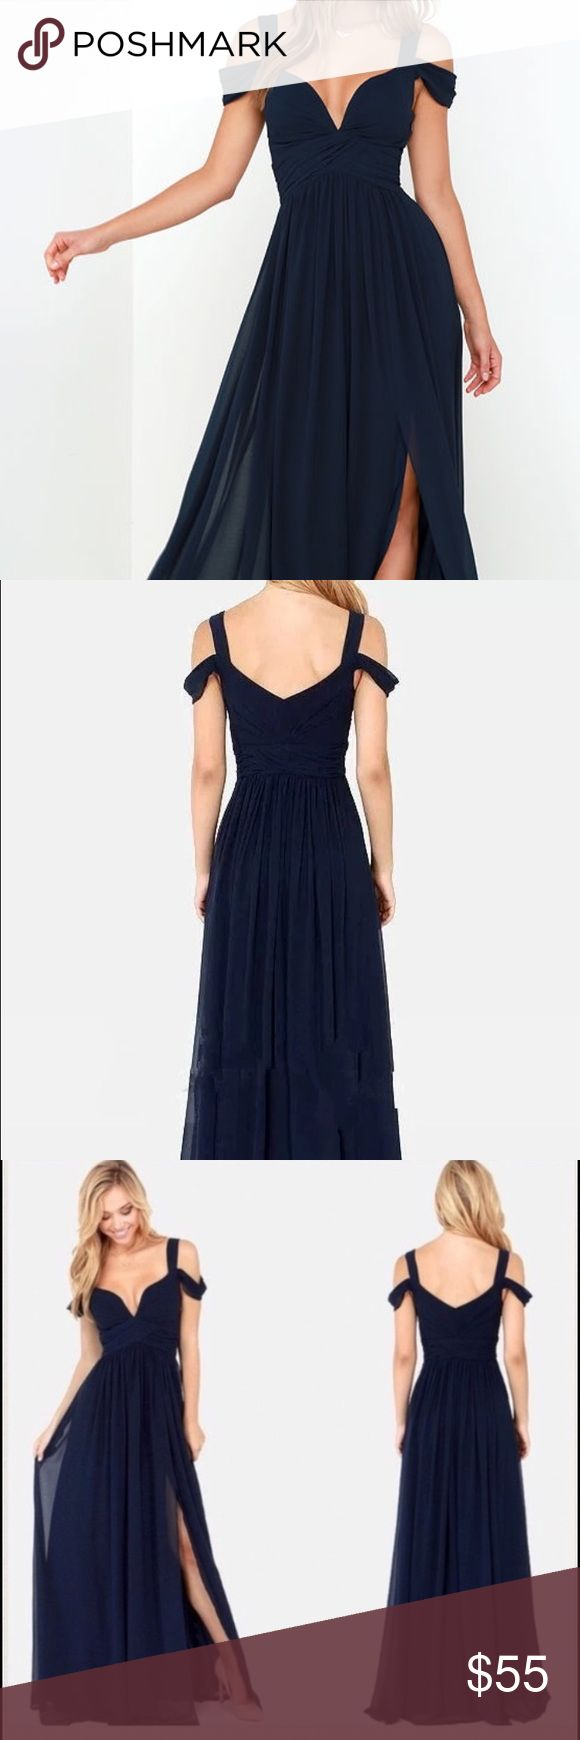 "Bariano Ocean of Elegance Navy Evening Gown XS  Sexy Navy Blue Chiffon Evening Off the Shoulder Formal Evening Gown. This is not the official Bariano brand. It is mentioned for visibility. Size XS 0-2. Hidden Zipper. Bust 30"" Waist 26"" Hips 35"" Length 62"". Excellent Condition with no signs of wear. No Brand. Bundle 2 or more items and get 20% off your entire purchase! Dresses Prom"